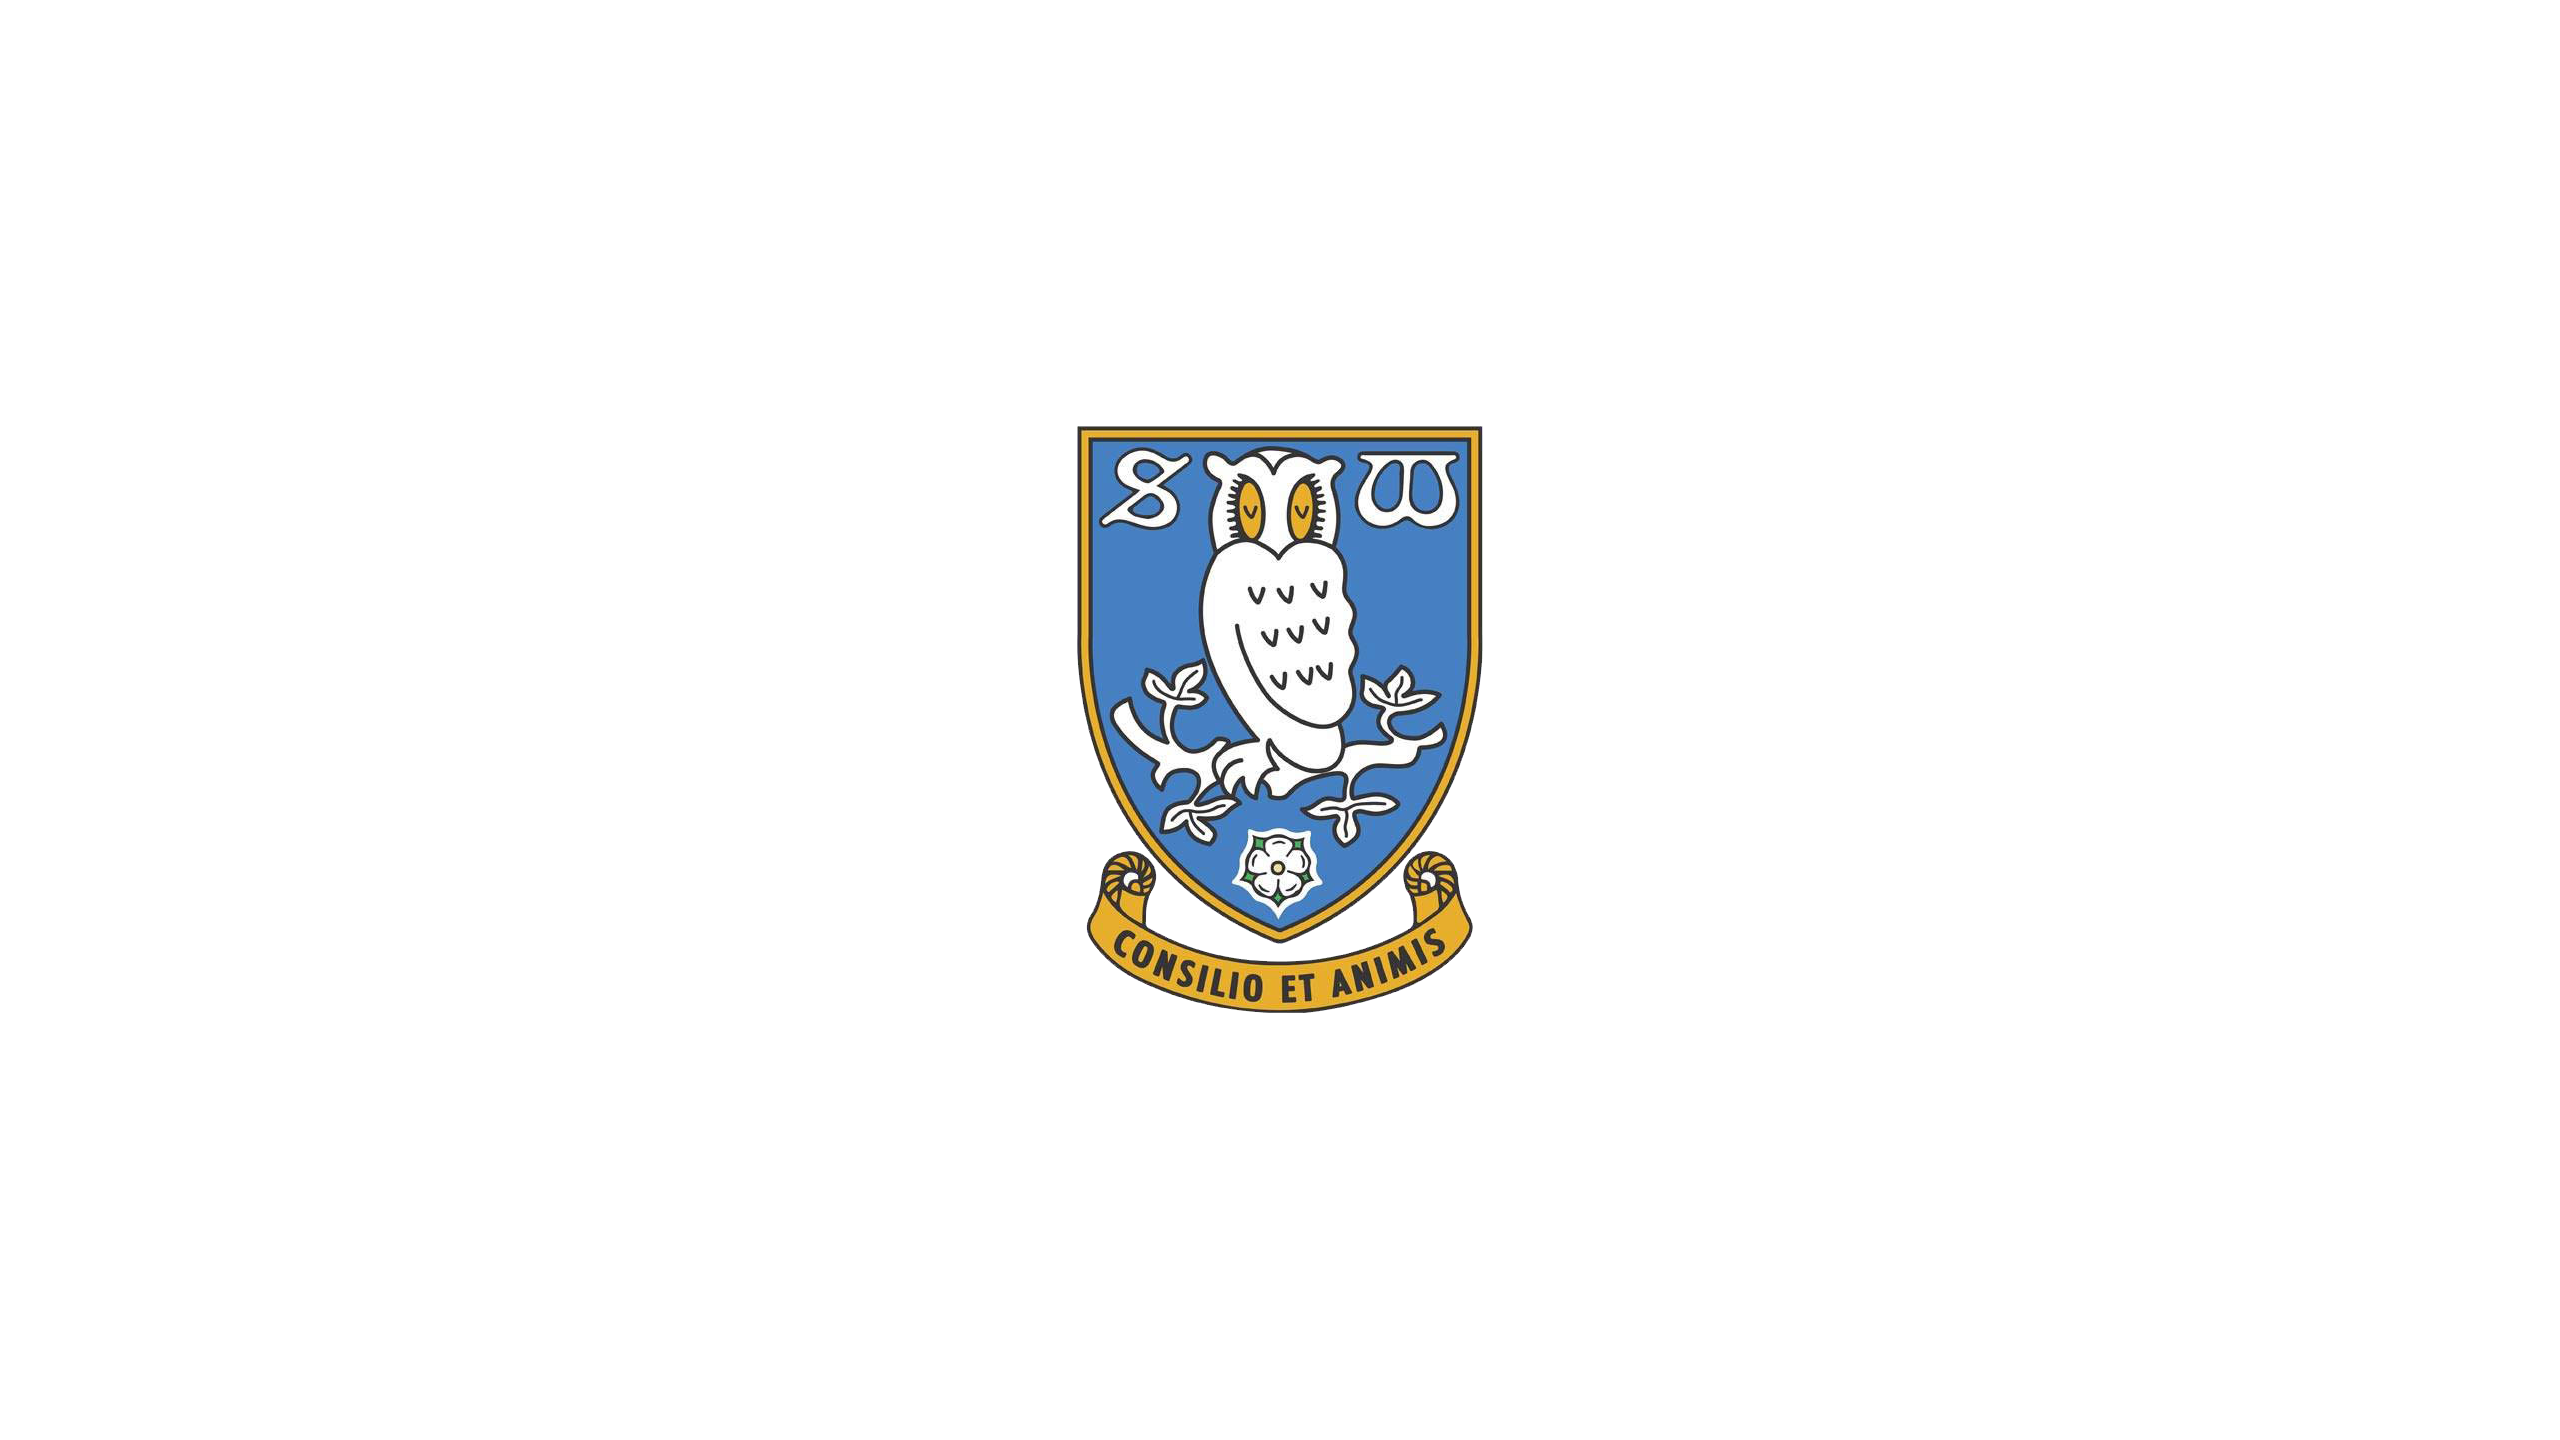 Sheffield Wednesday FC (Alt)